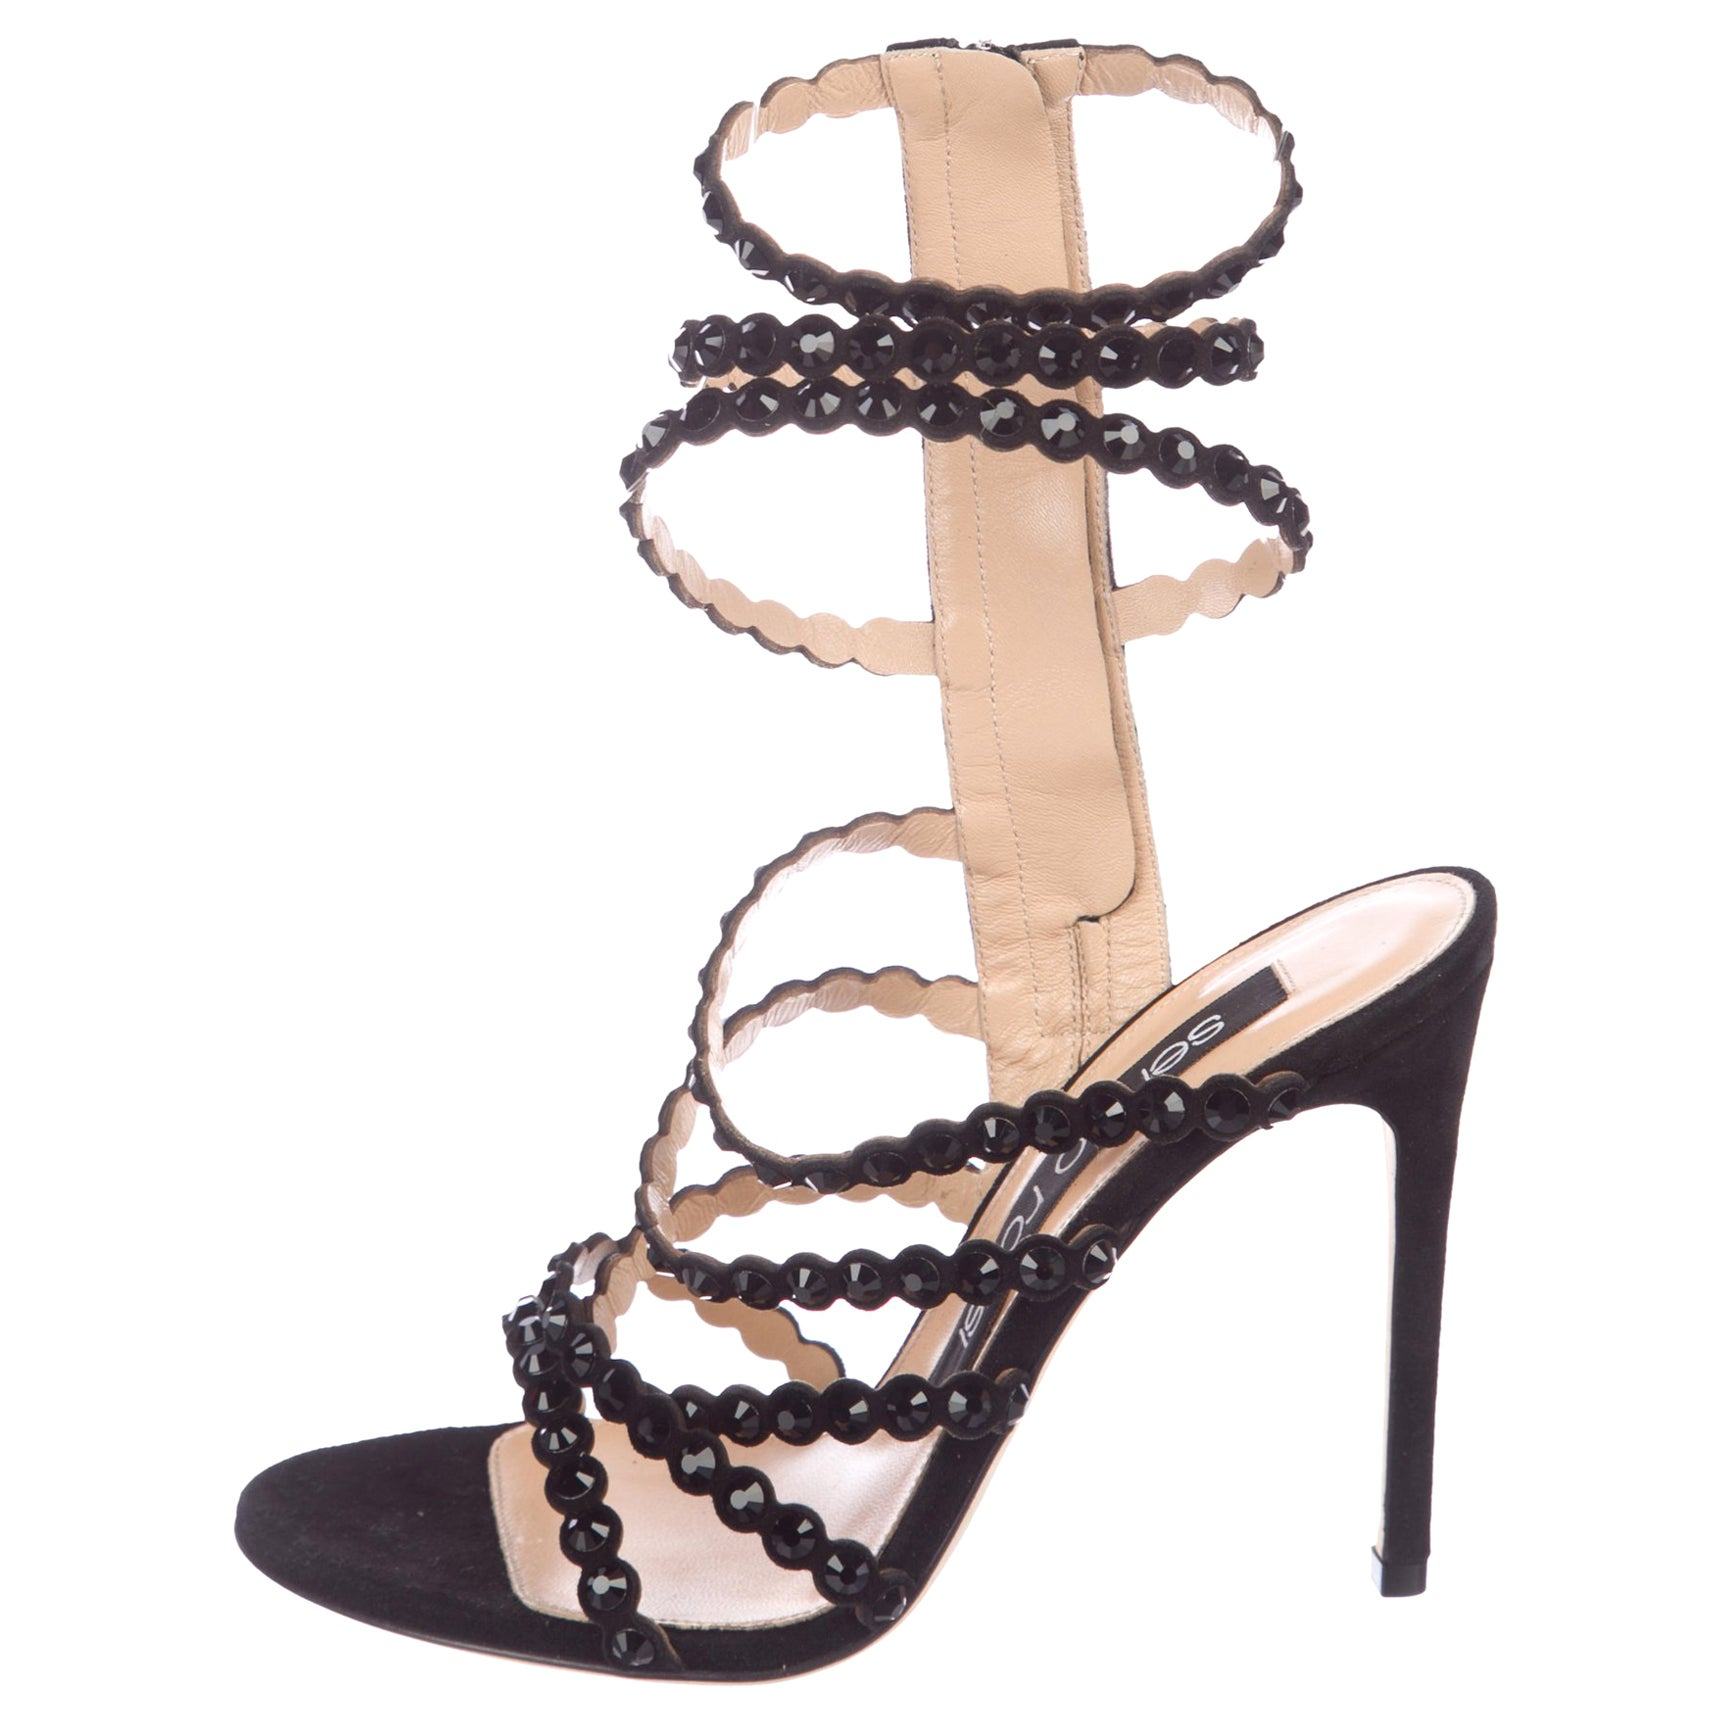 e43a2196ae27 GIANVITO ROSSI NEW Black Leather Crystal Gladiator Strappy Sandals Heels in  Box For Sale at 1stdibs